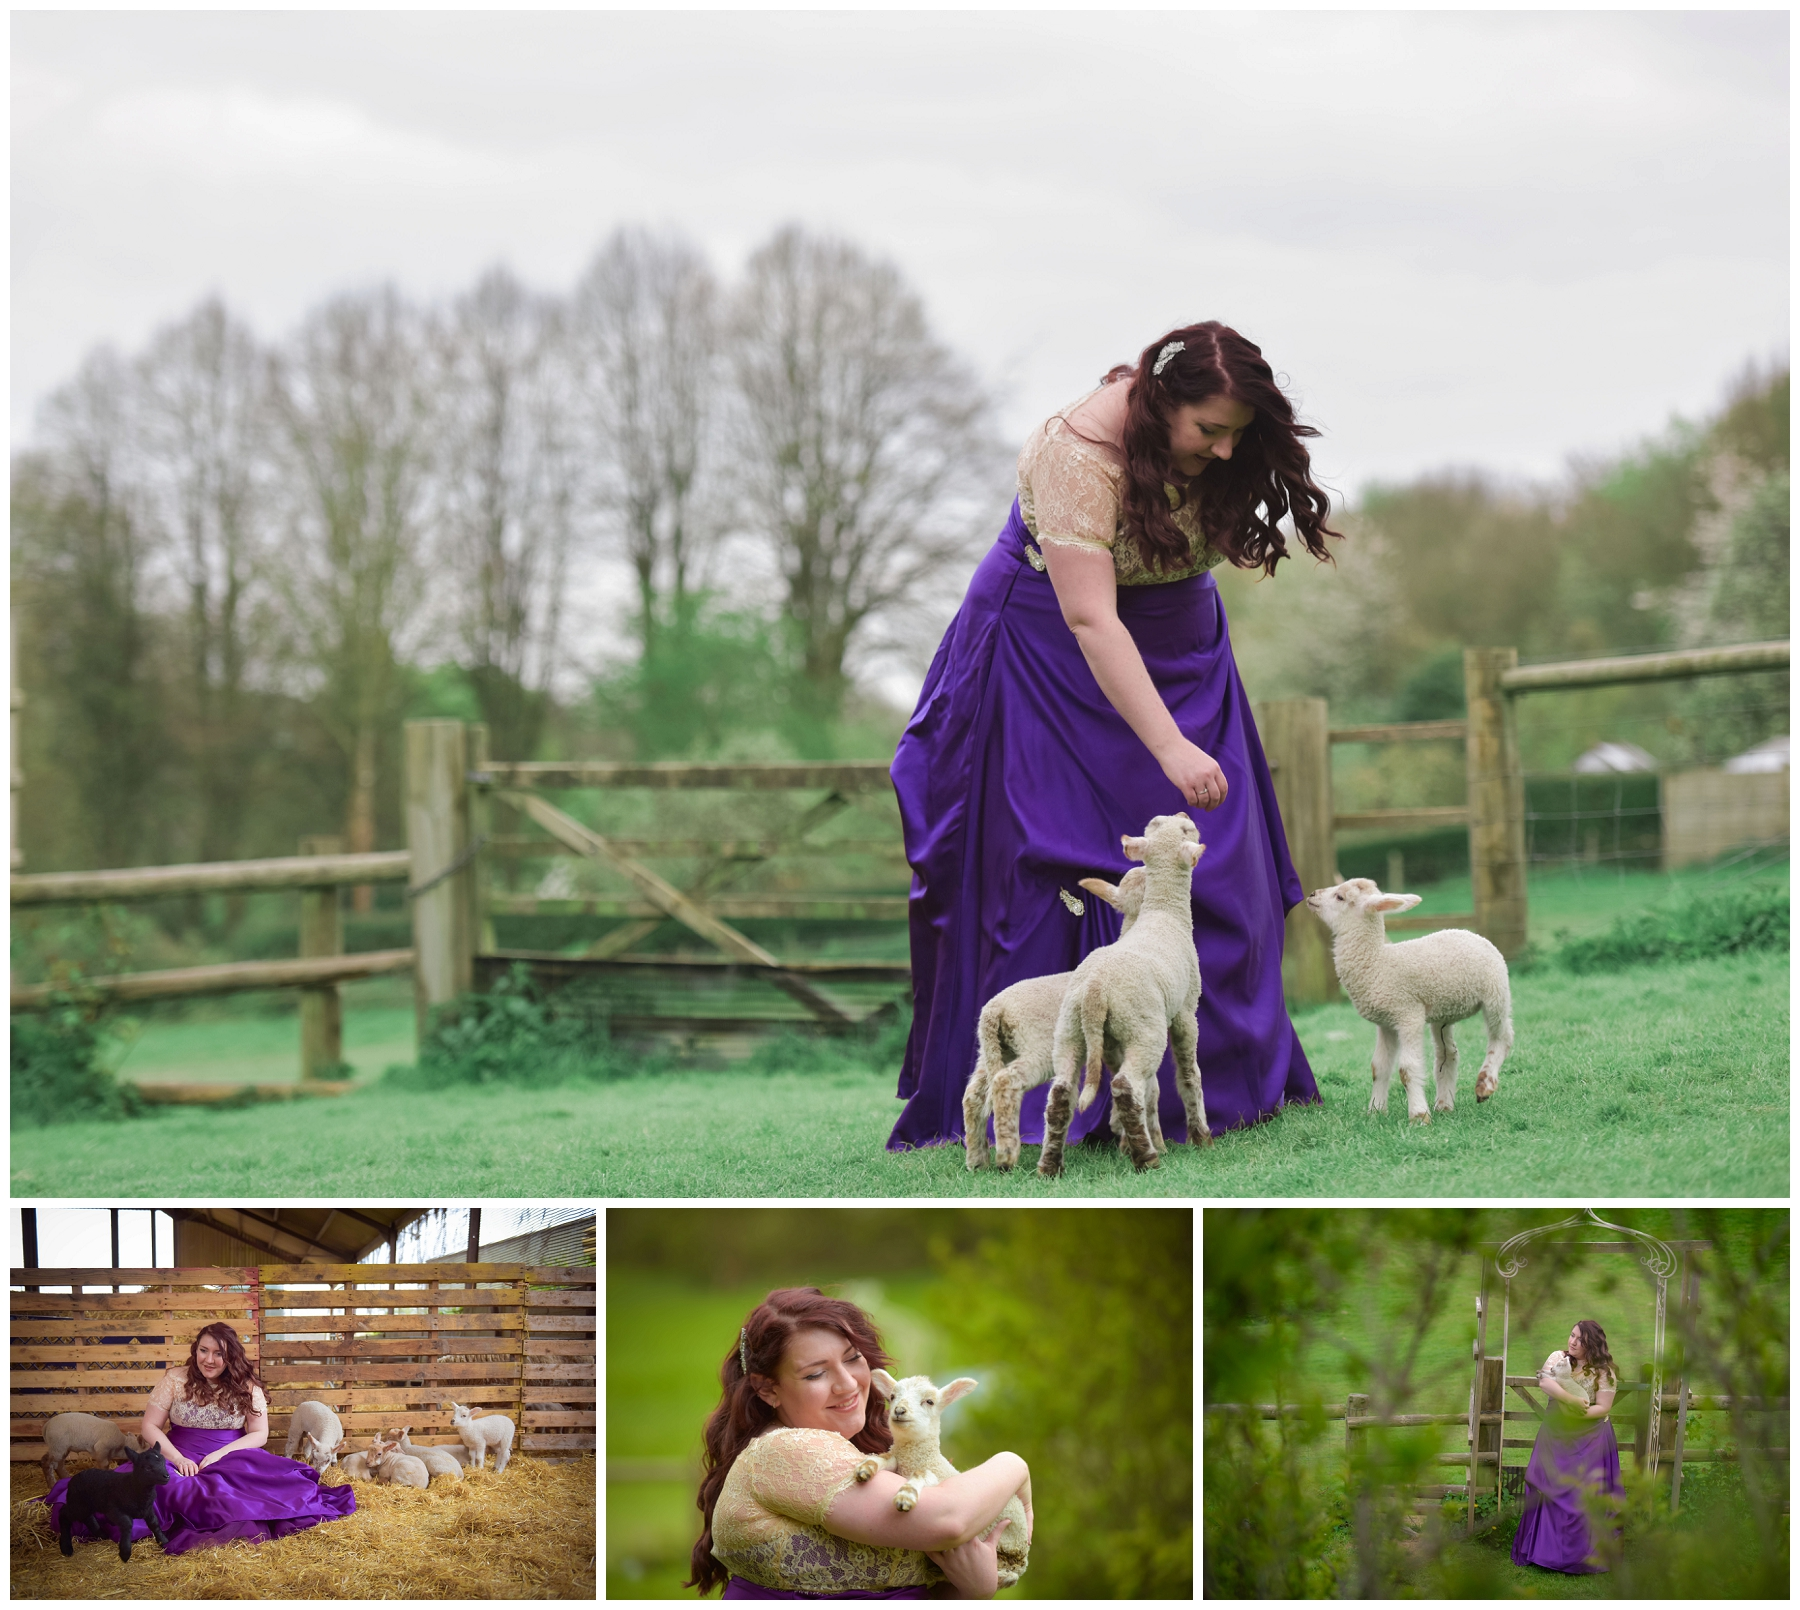 rock the frock in a purple wedding dress with lambs